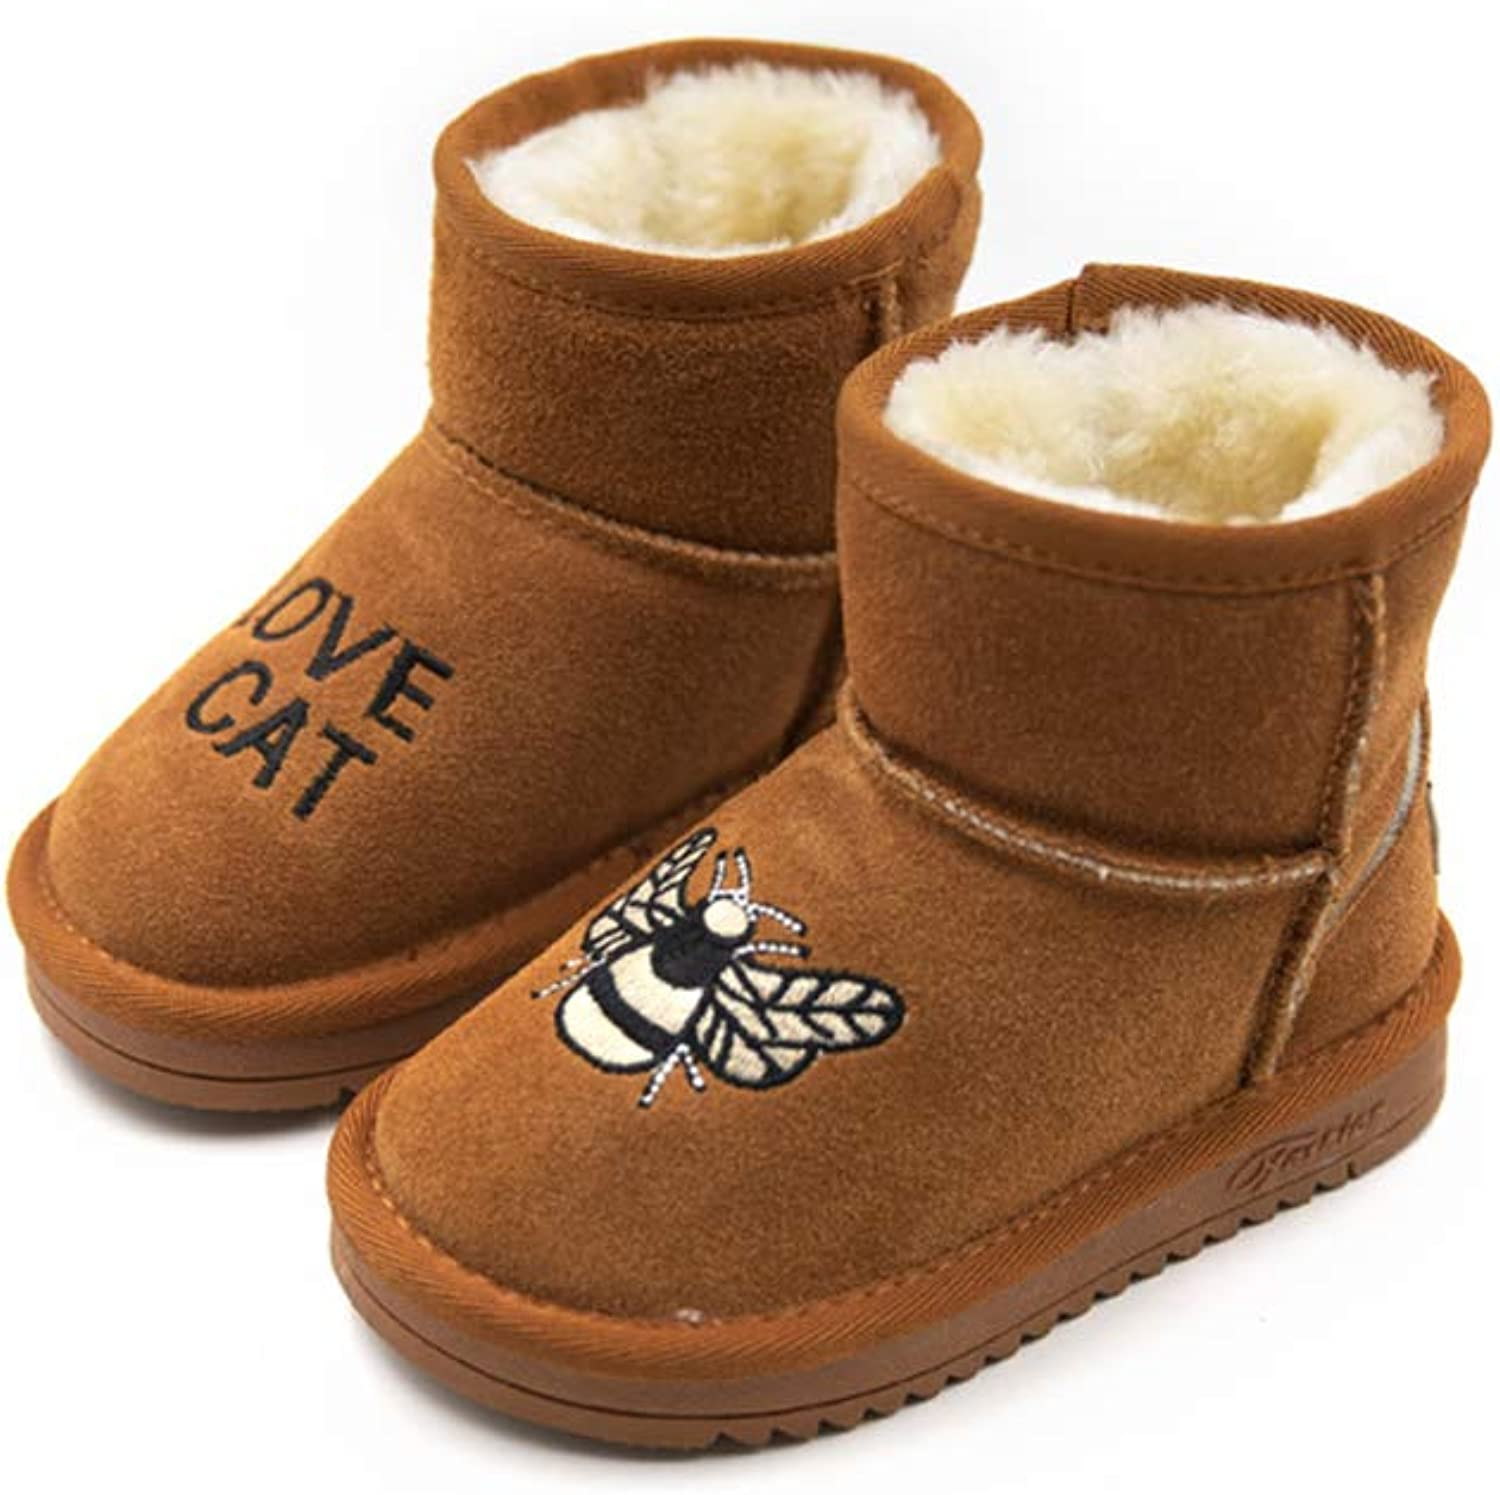 Fancyww Boy's Girl's Genuine Leather Winter Warm Ankle Boots Casual shoes